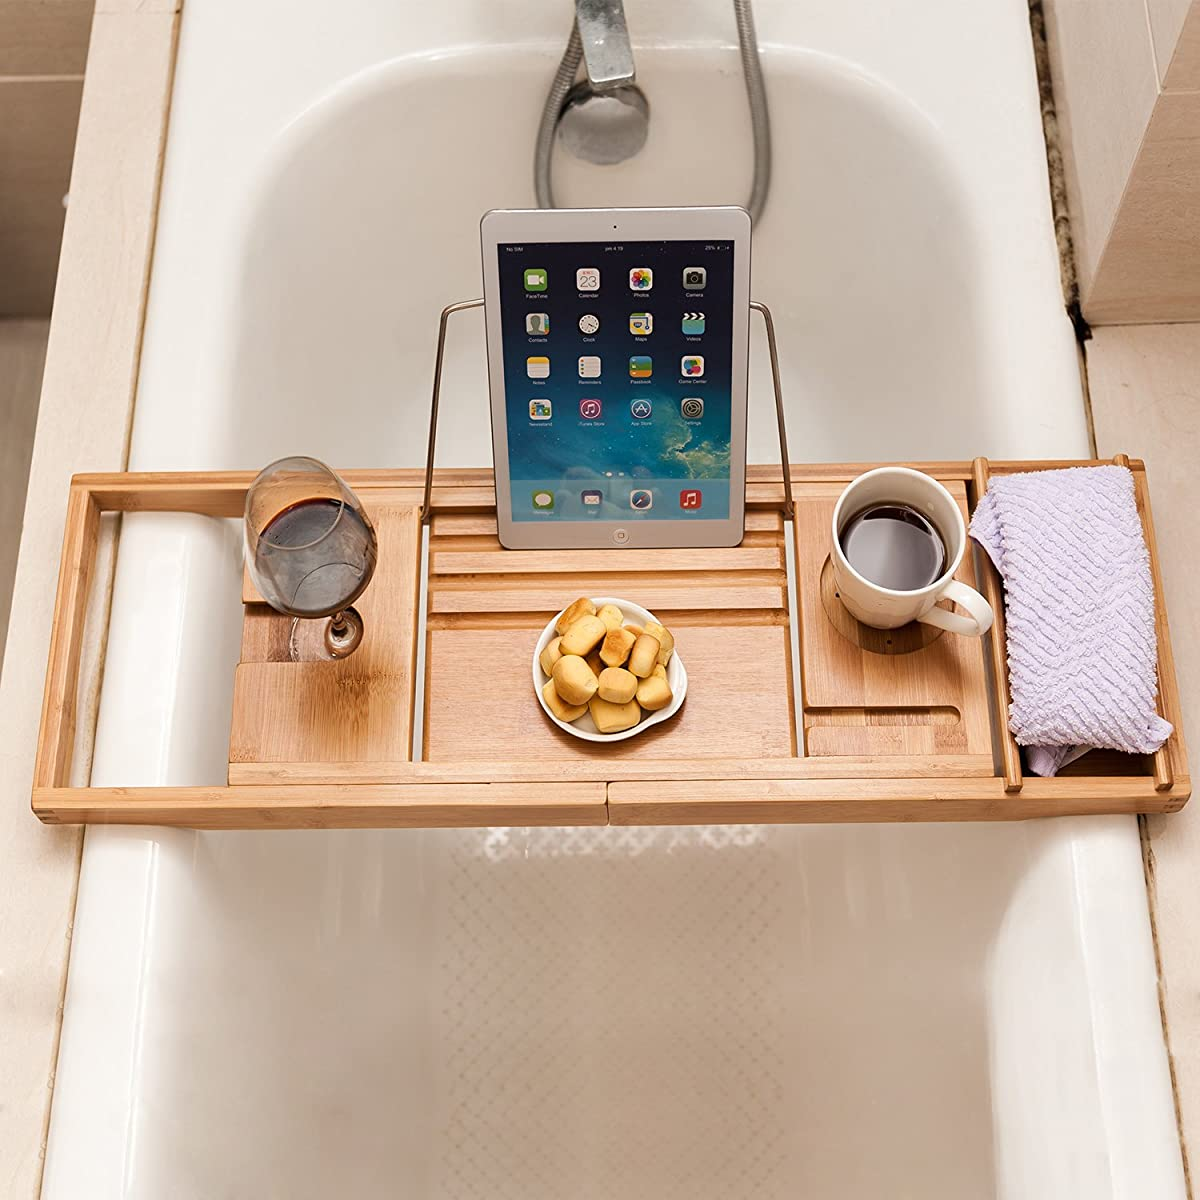 Valdler Home Wooden Bathtub Tray Caddy With Reading Rack And Wine Glass Holder